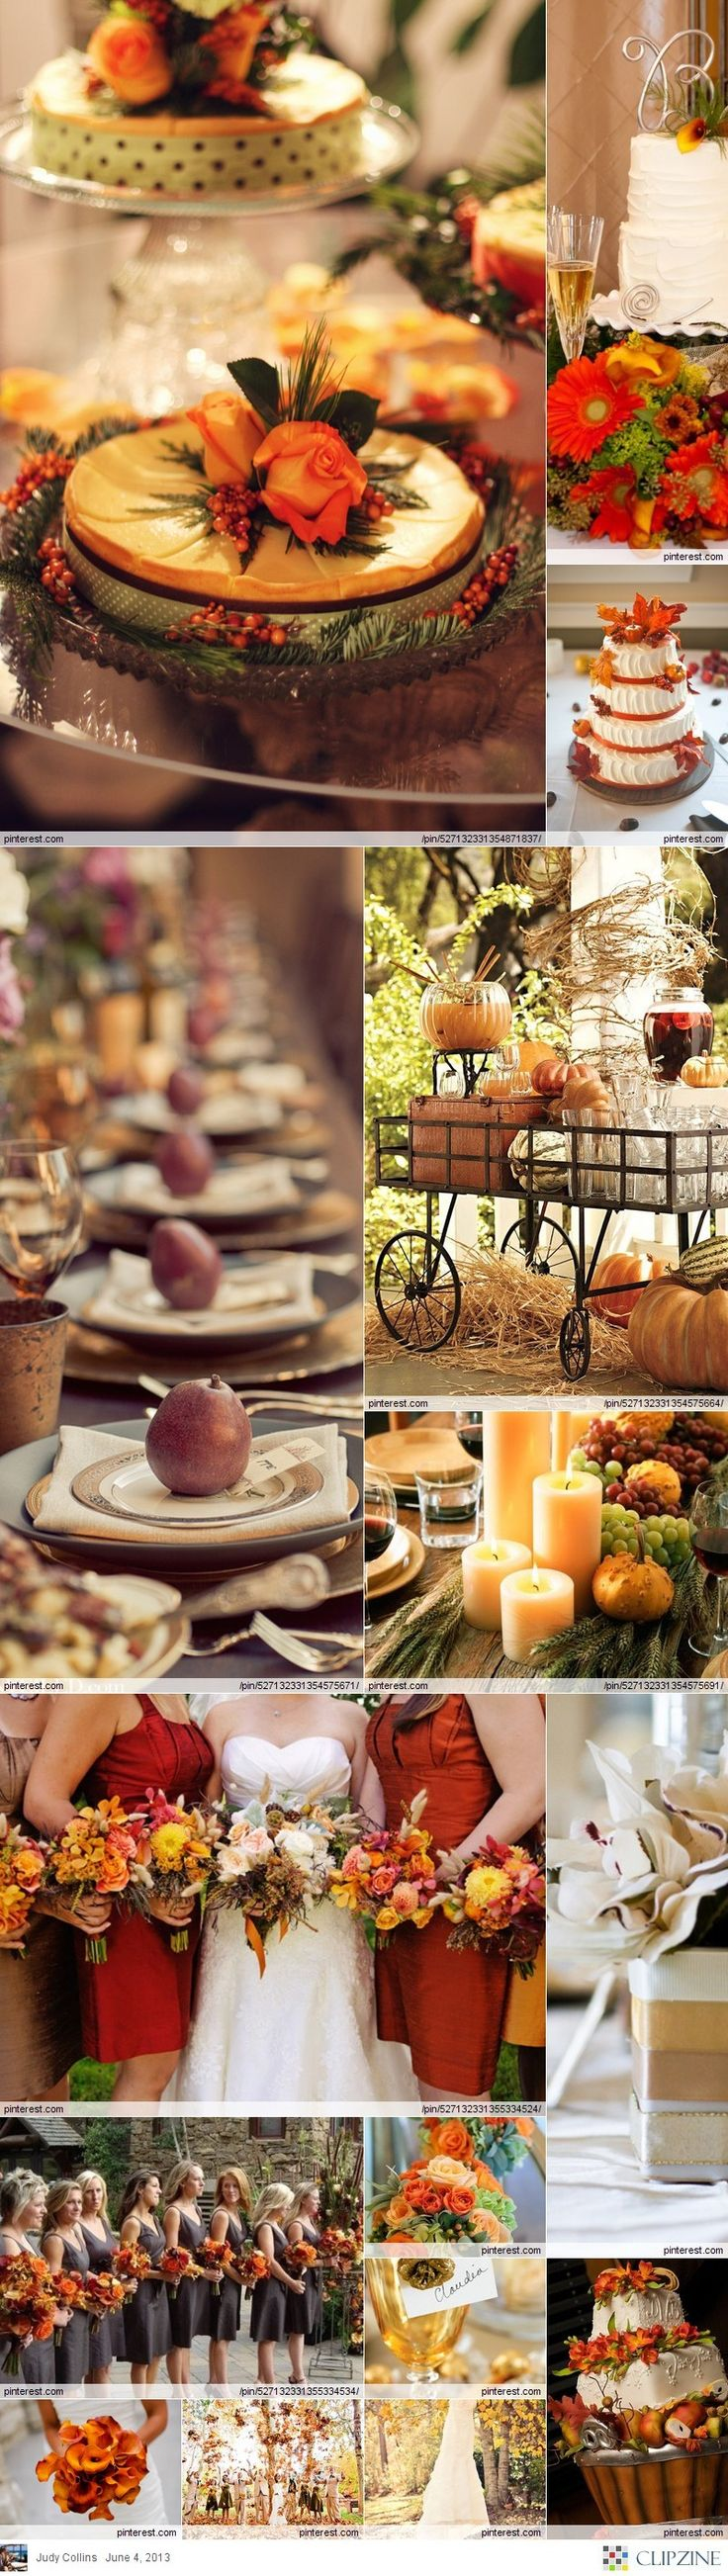 best fall weddings images on pinterest holidays holidays